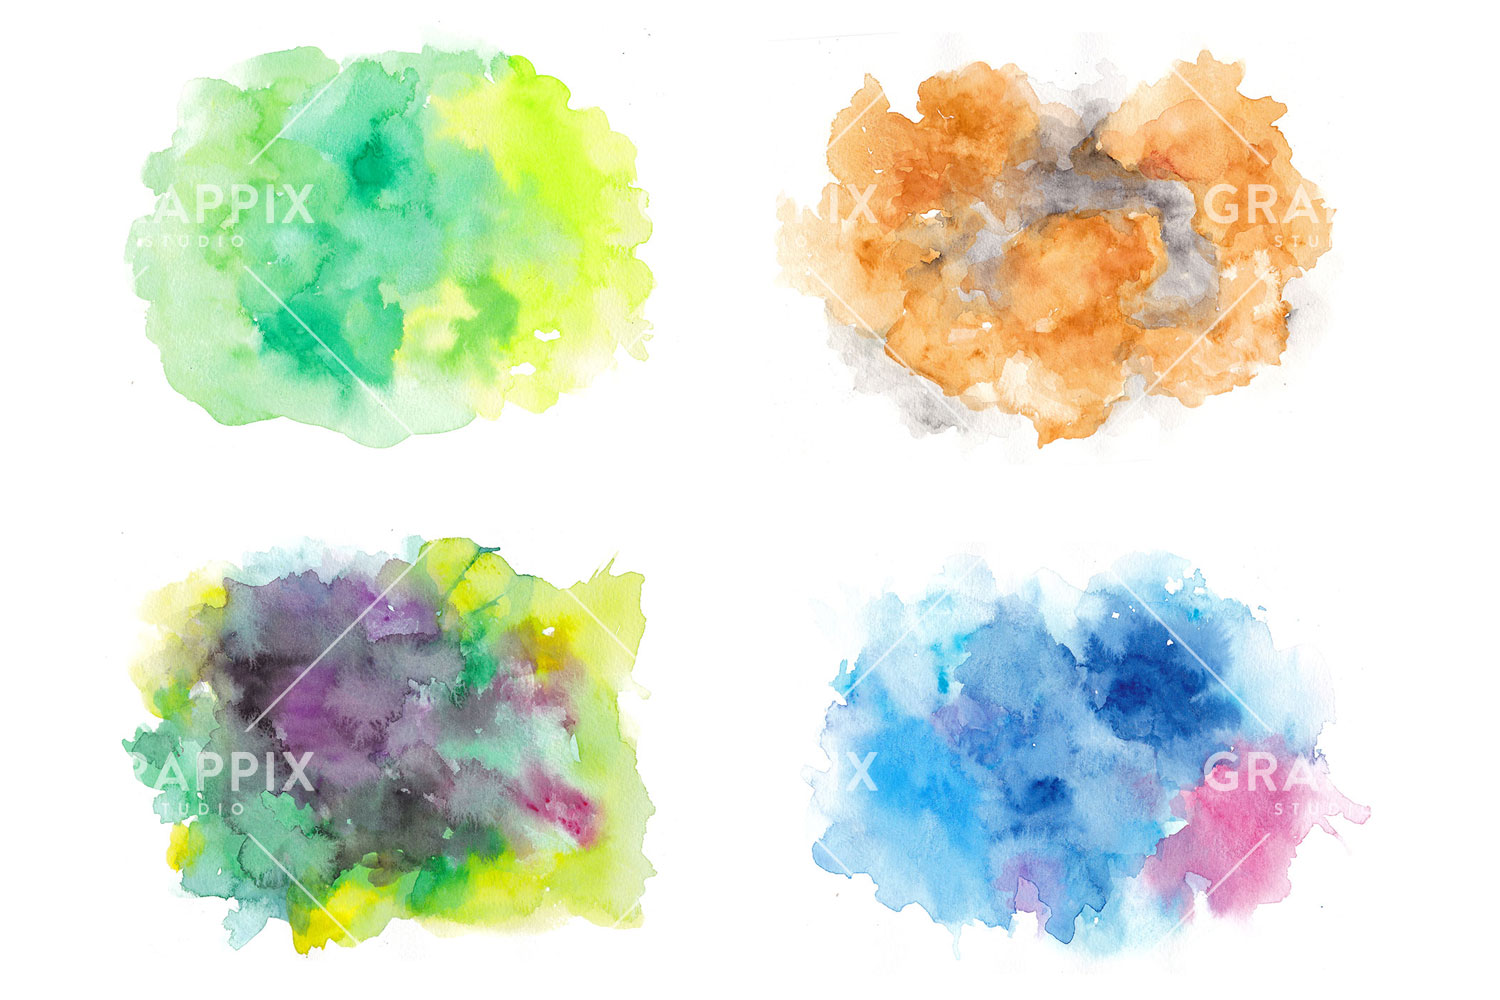 14 Abstract Colorful Watercolor Backgrounds example image 4